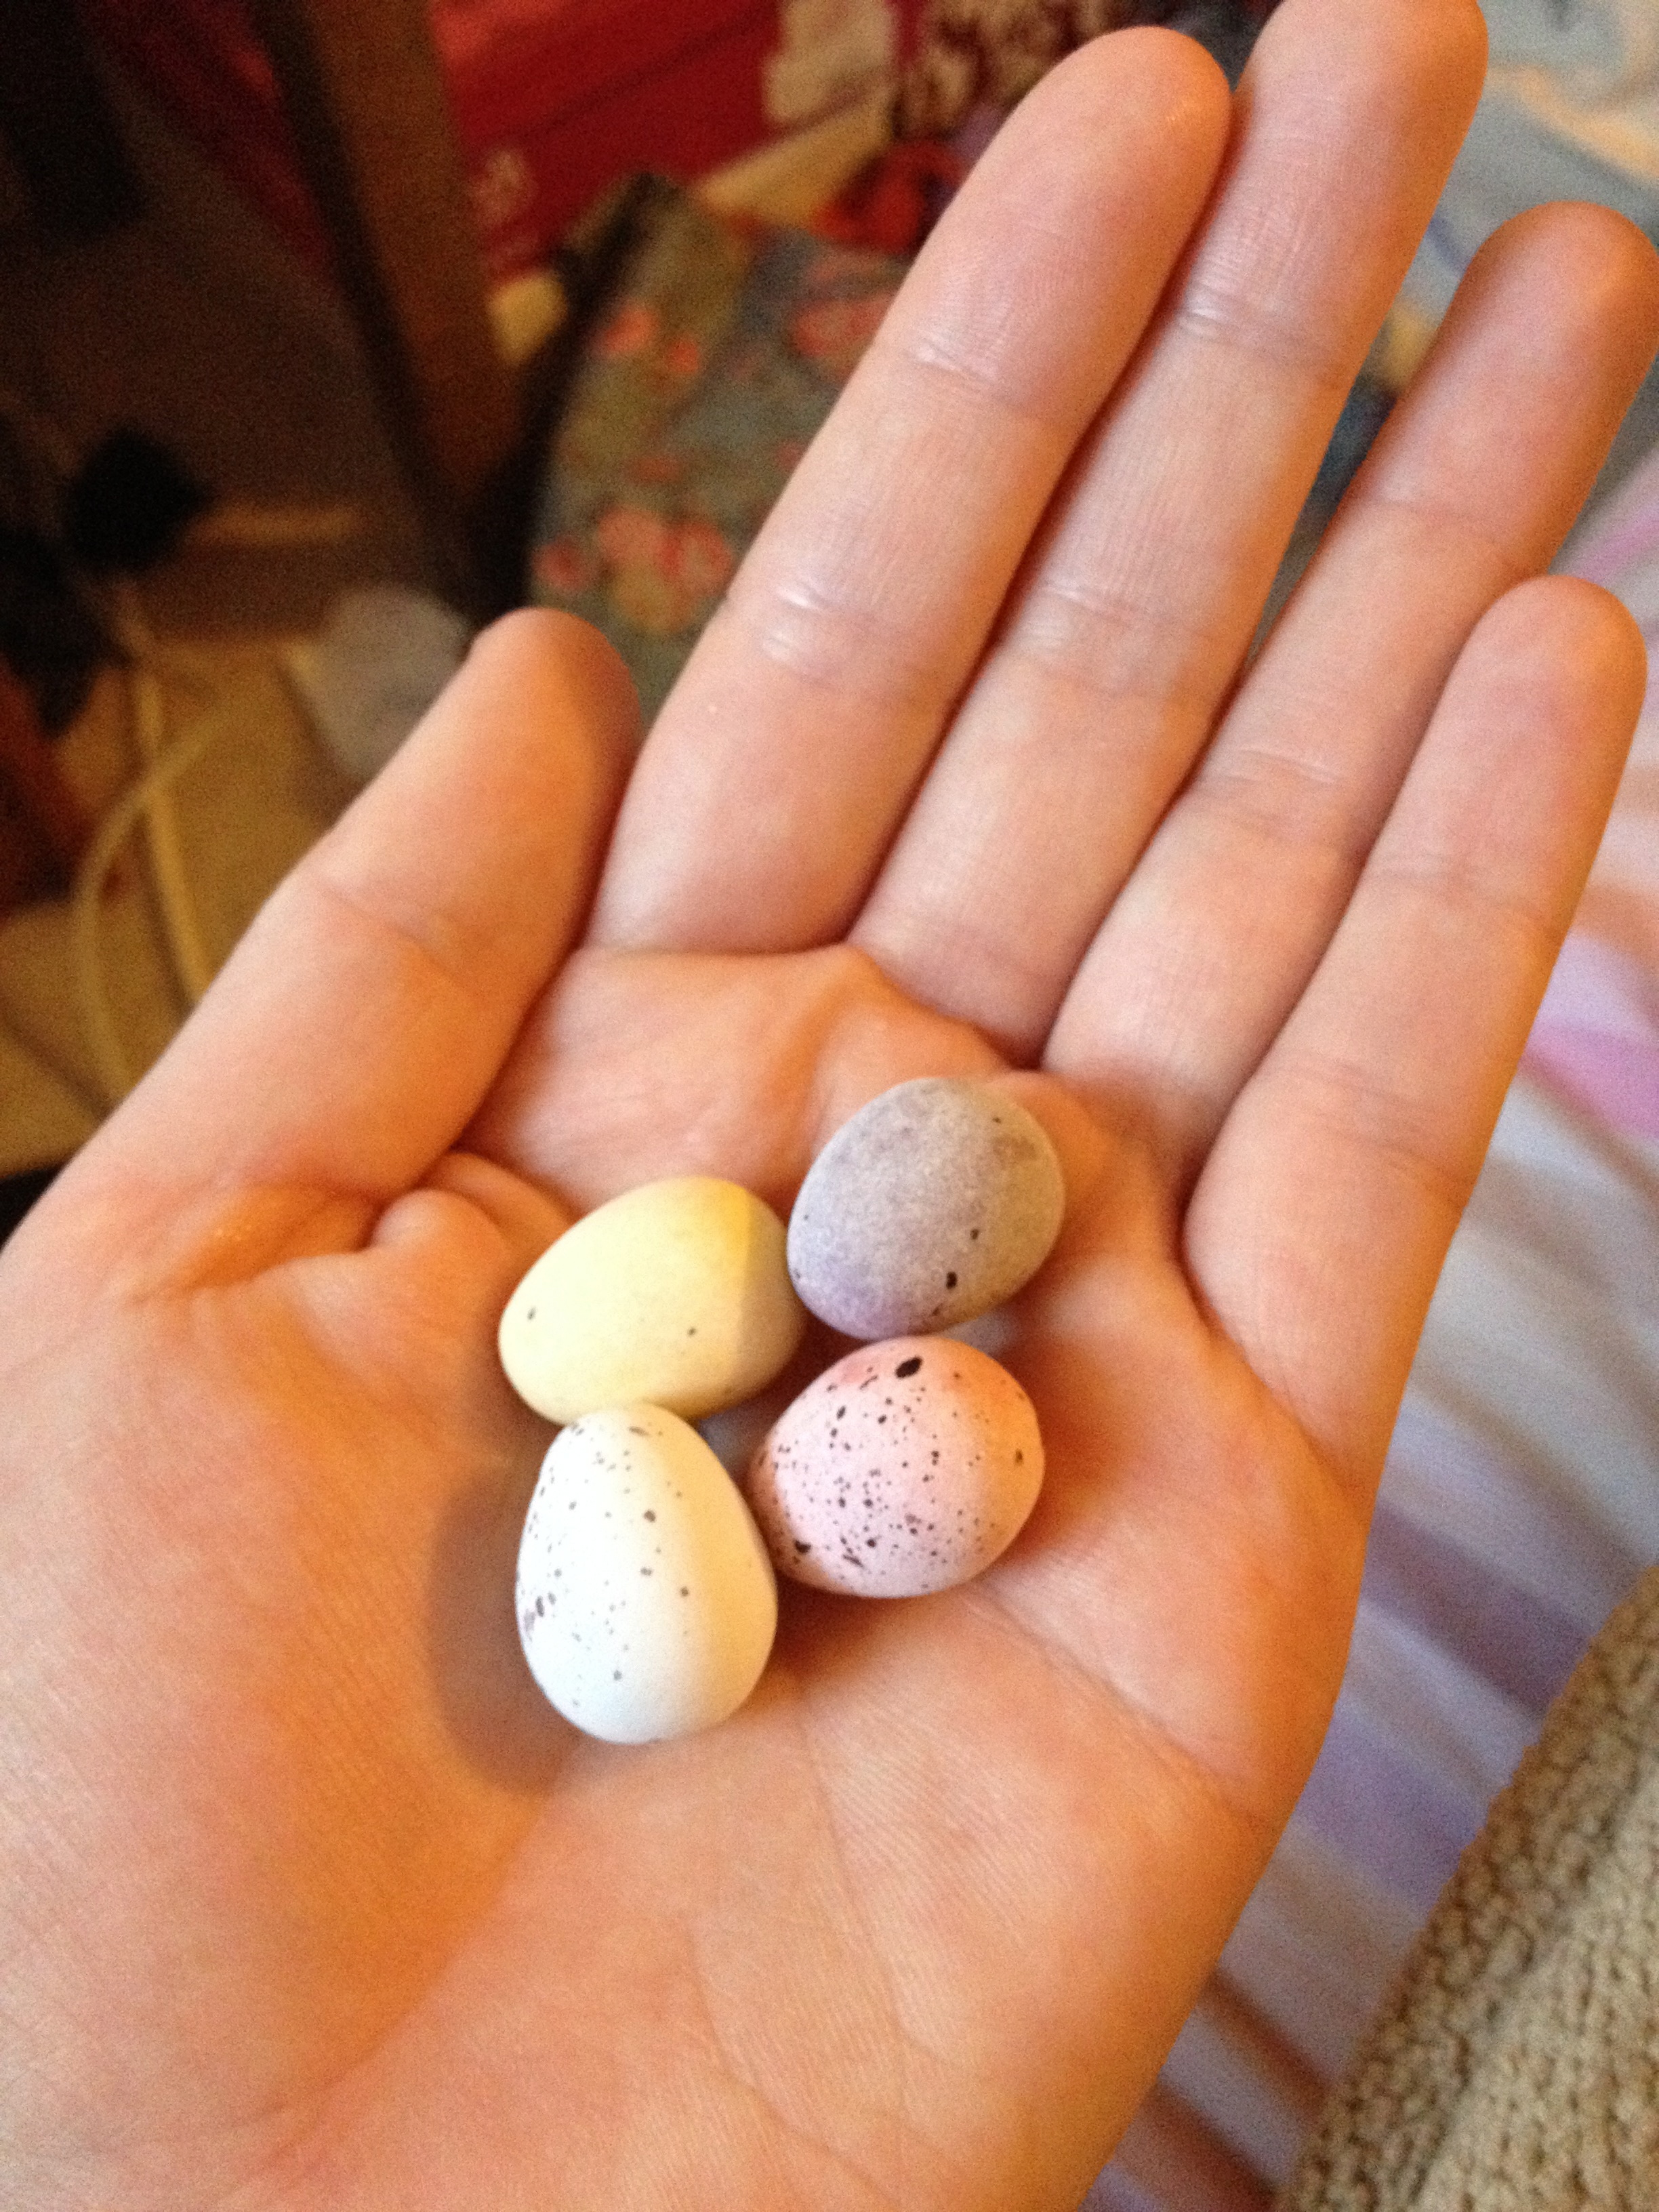 An after walk snack of mini eggs